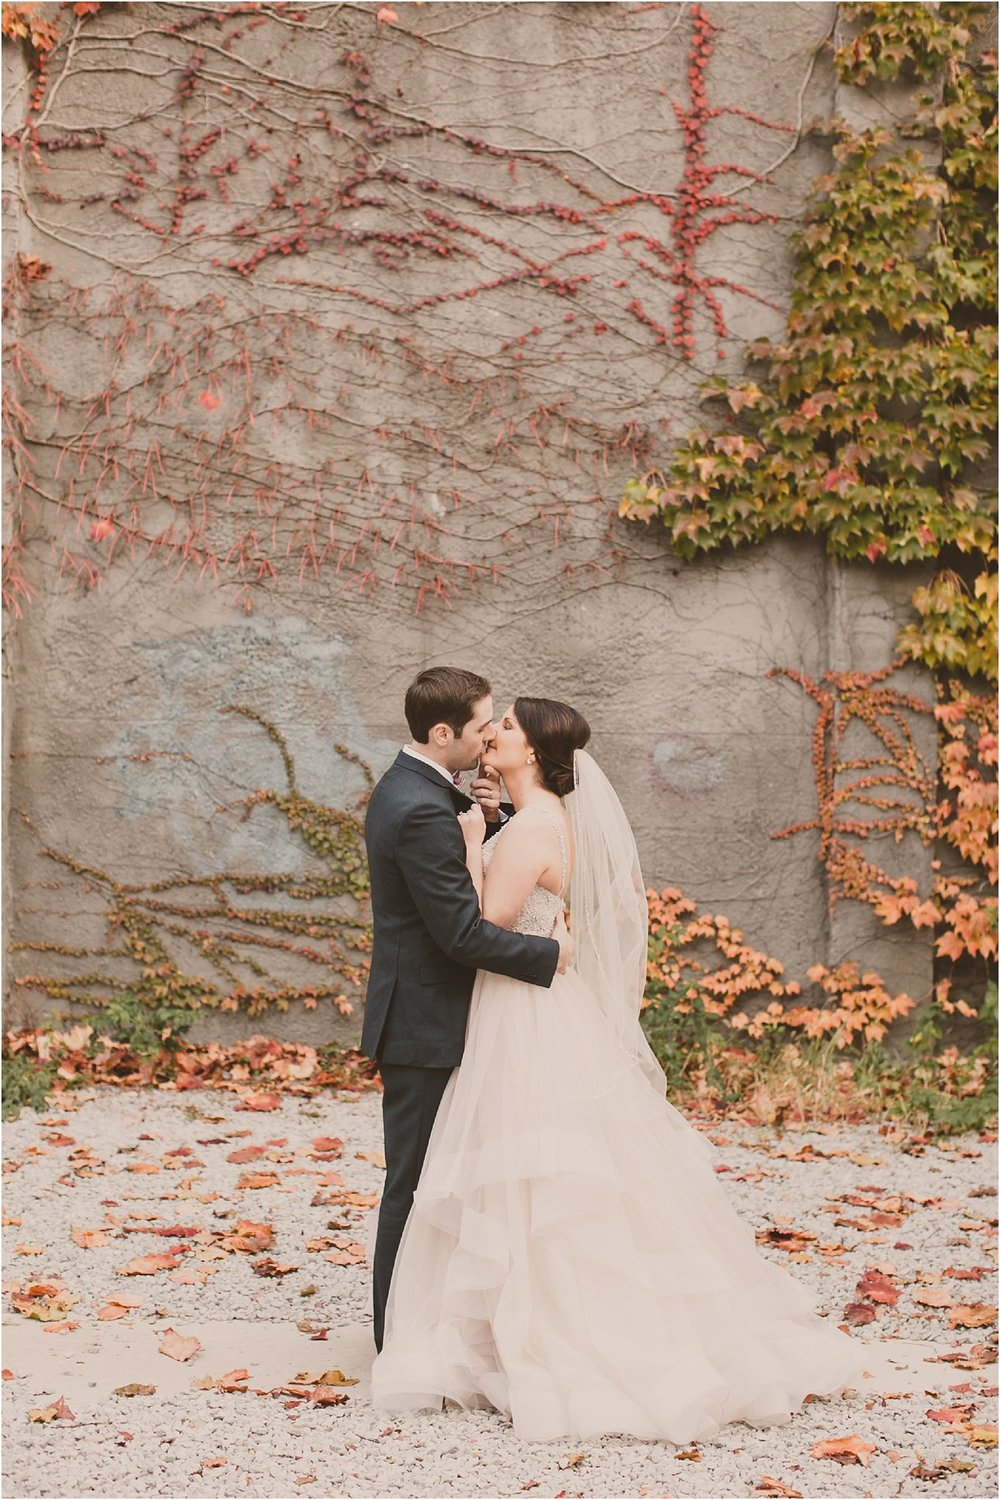 PattengalePhotography_boho_OffBeat_Wedding_StLouis_PiperPalmHouse_Westin_Hipster_Modern_Elegance_November_Fall_Weddings_Husband&Wife_Photographer_Organic_Pink_Greens_Mark&Julia__0108.jpg